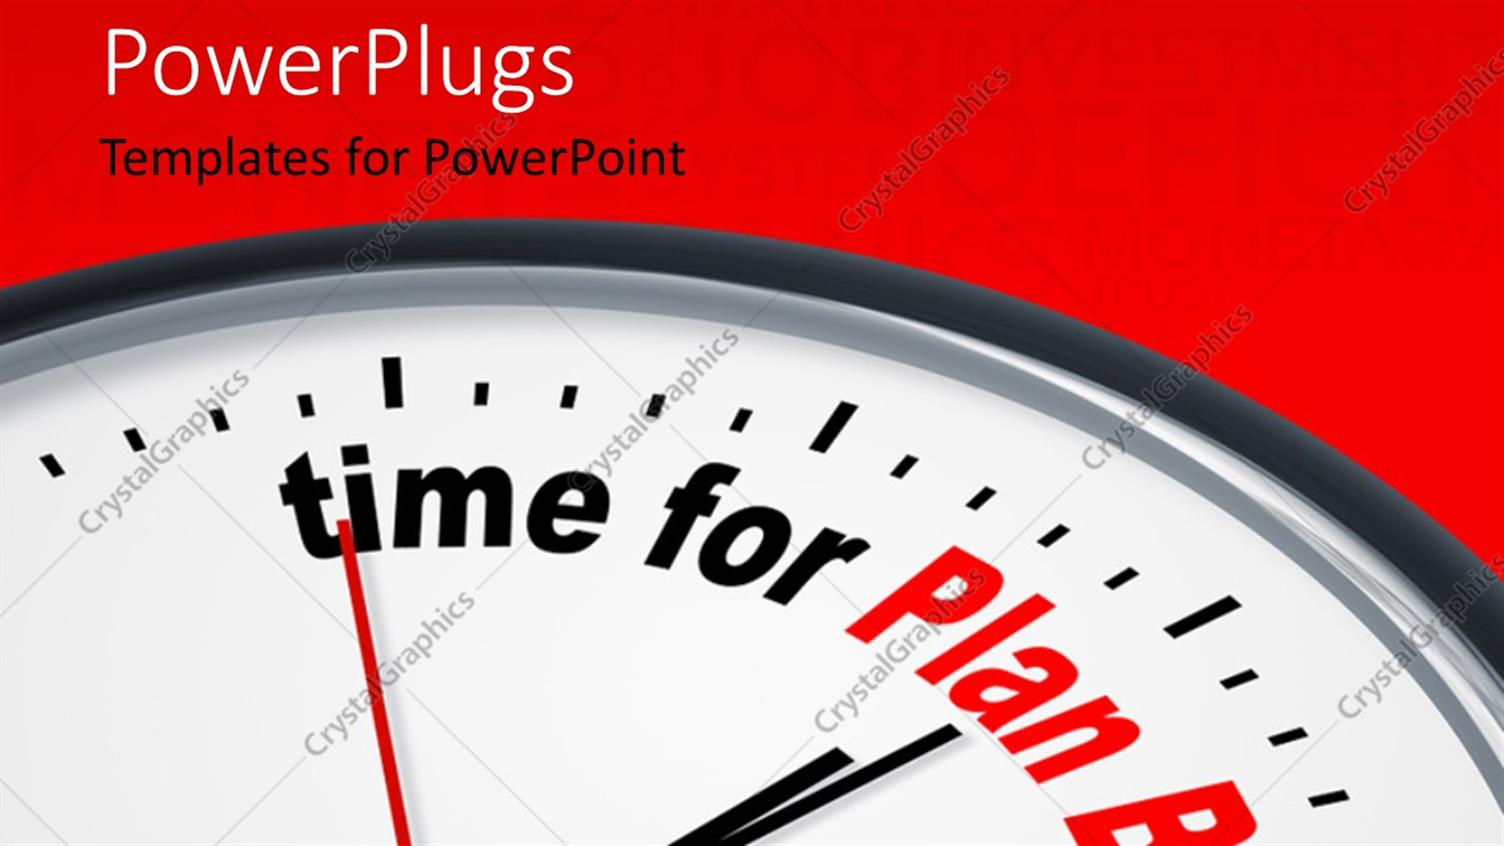 PowerPoint Template Displaying Depiction of a Nice Clock with Time for Plan B Against a Red Background with Keywords